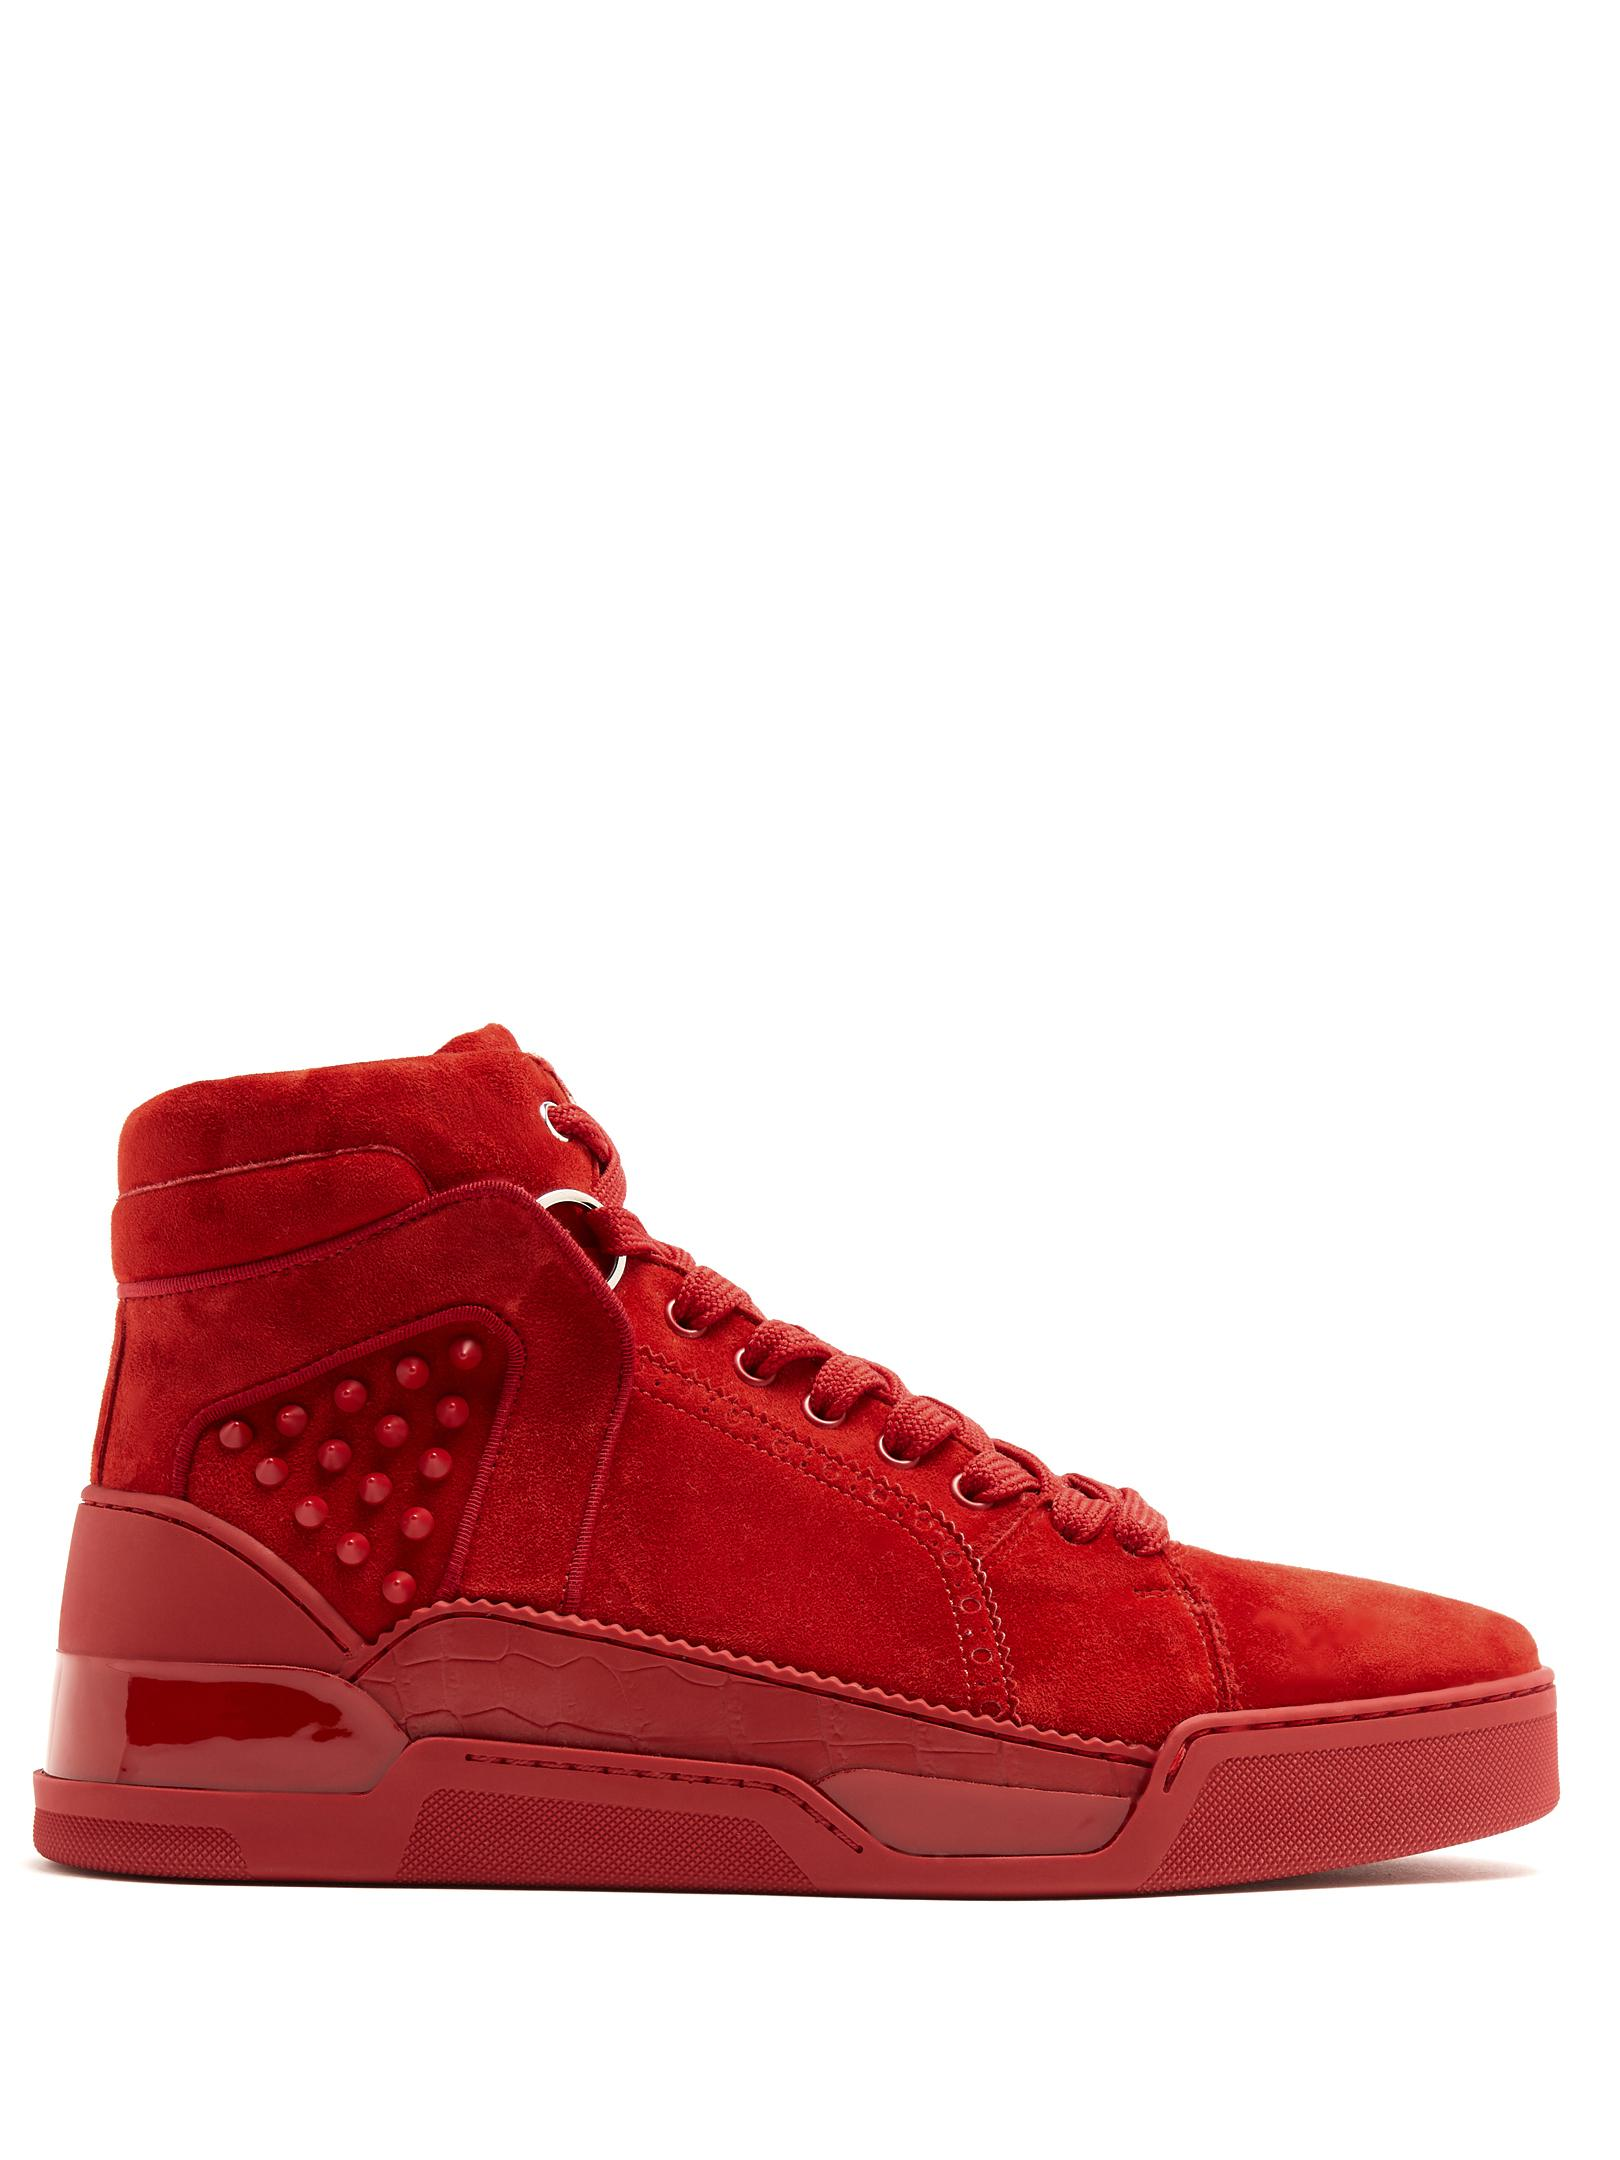 Christian Louboutin Loubikick suede leather sneakers high-top trainers